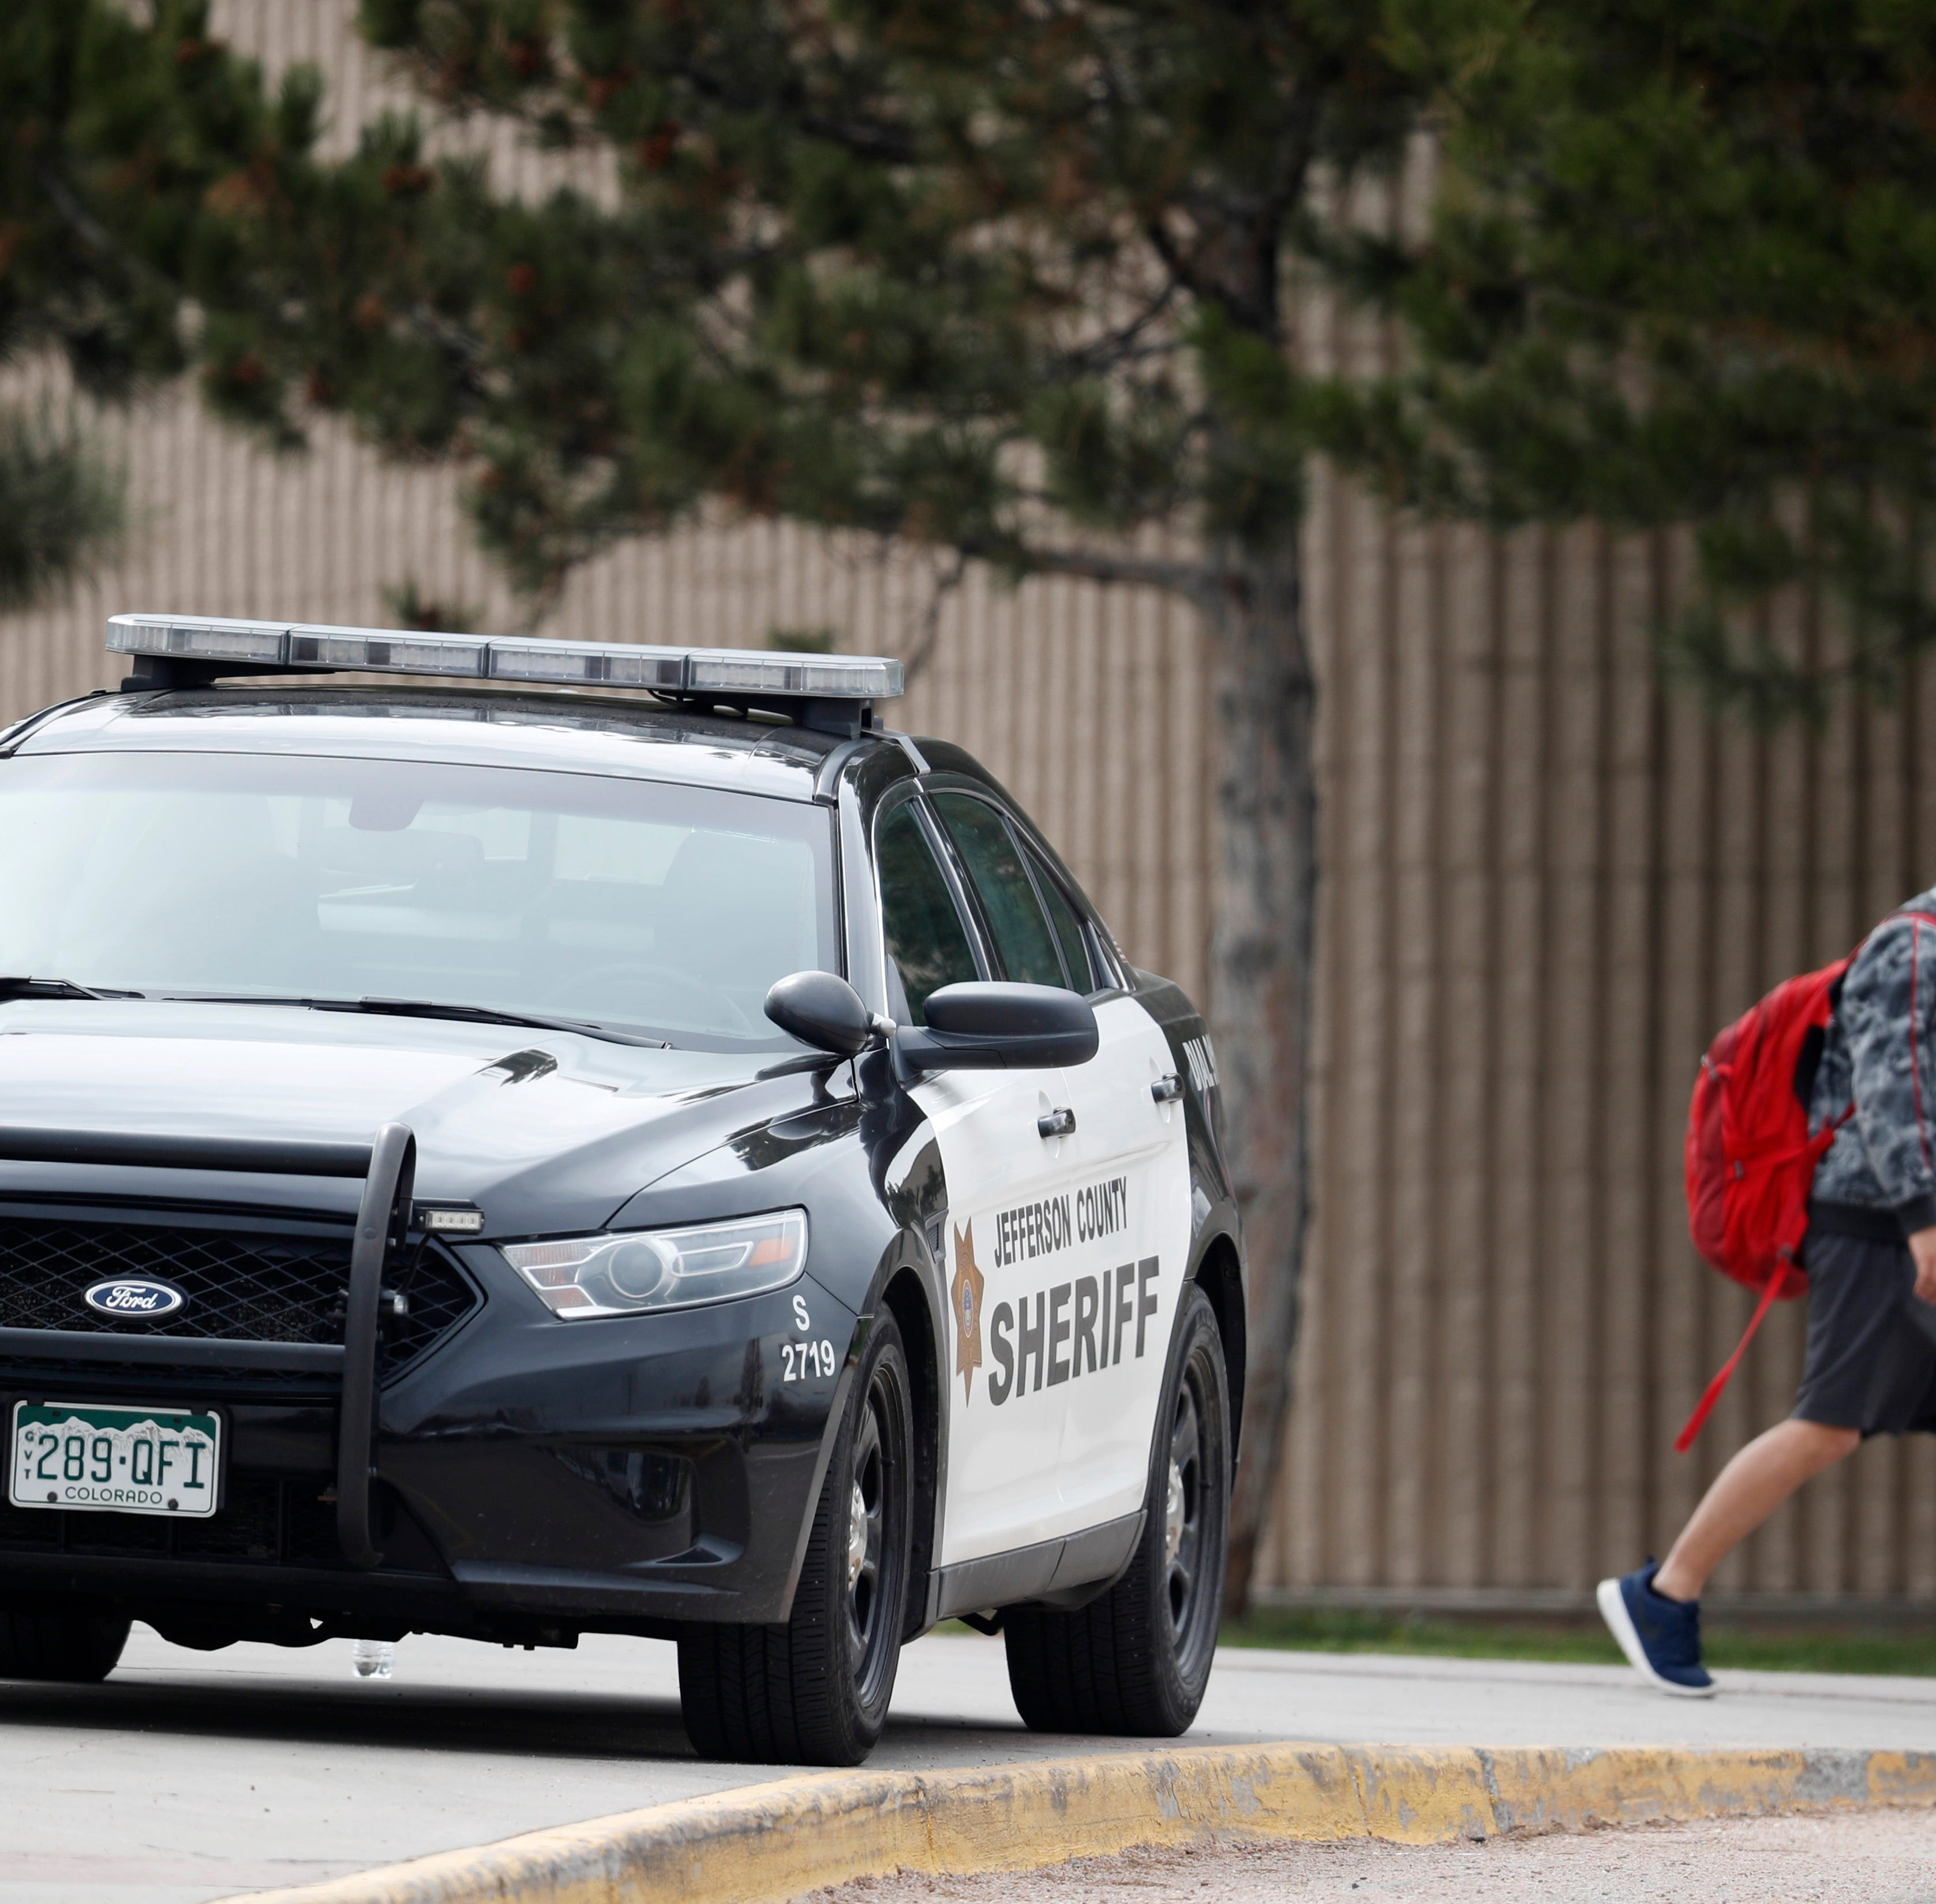 Woman 'infatuated' by Columbine shooting prompts FBI manhunt; Denver schools cancel Wednesday classes